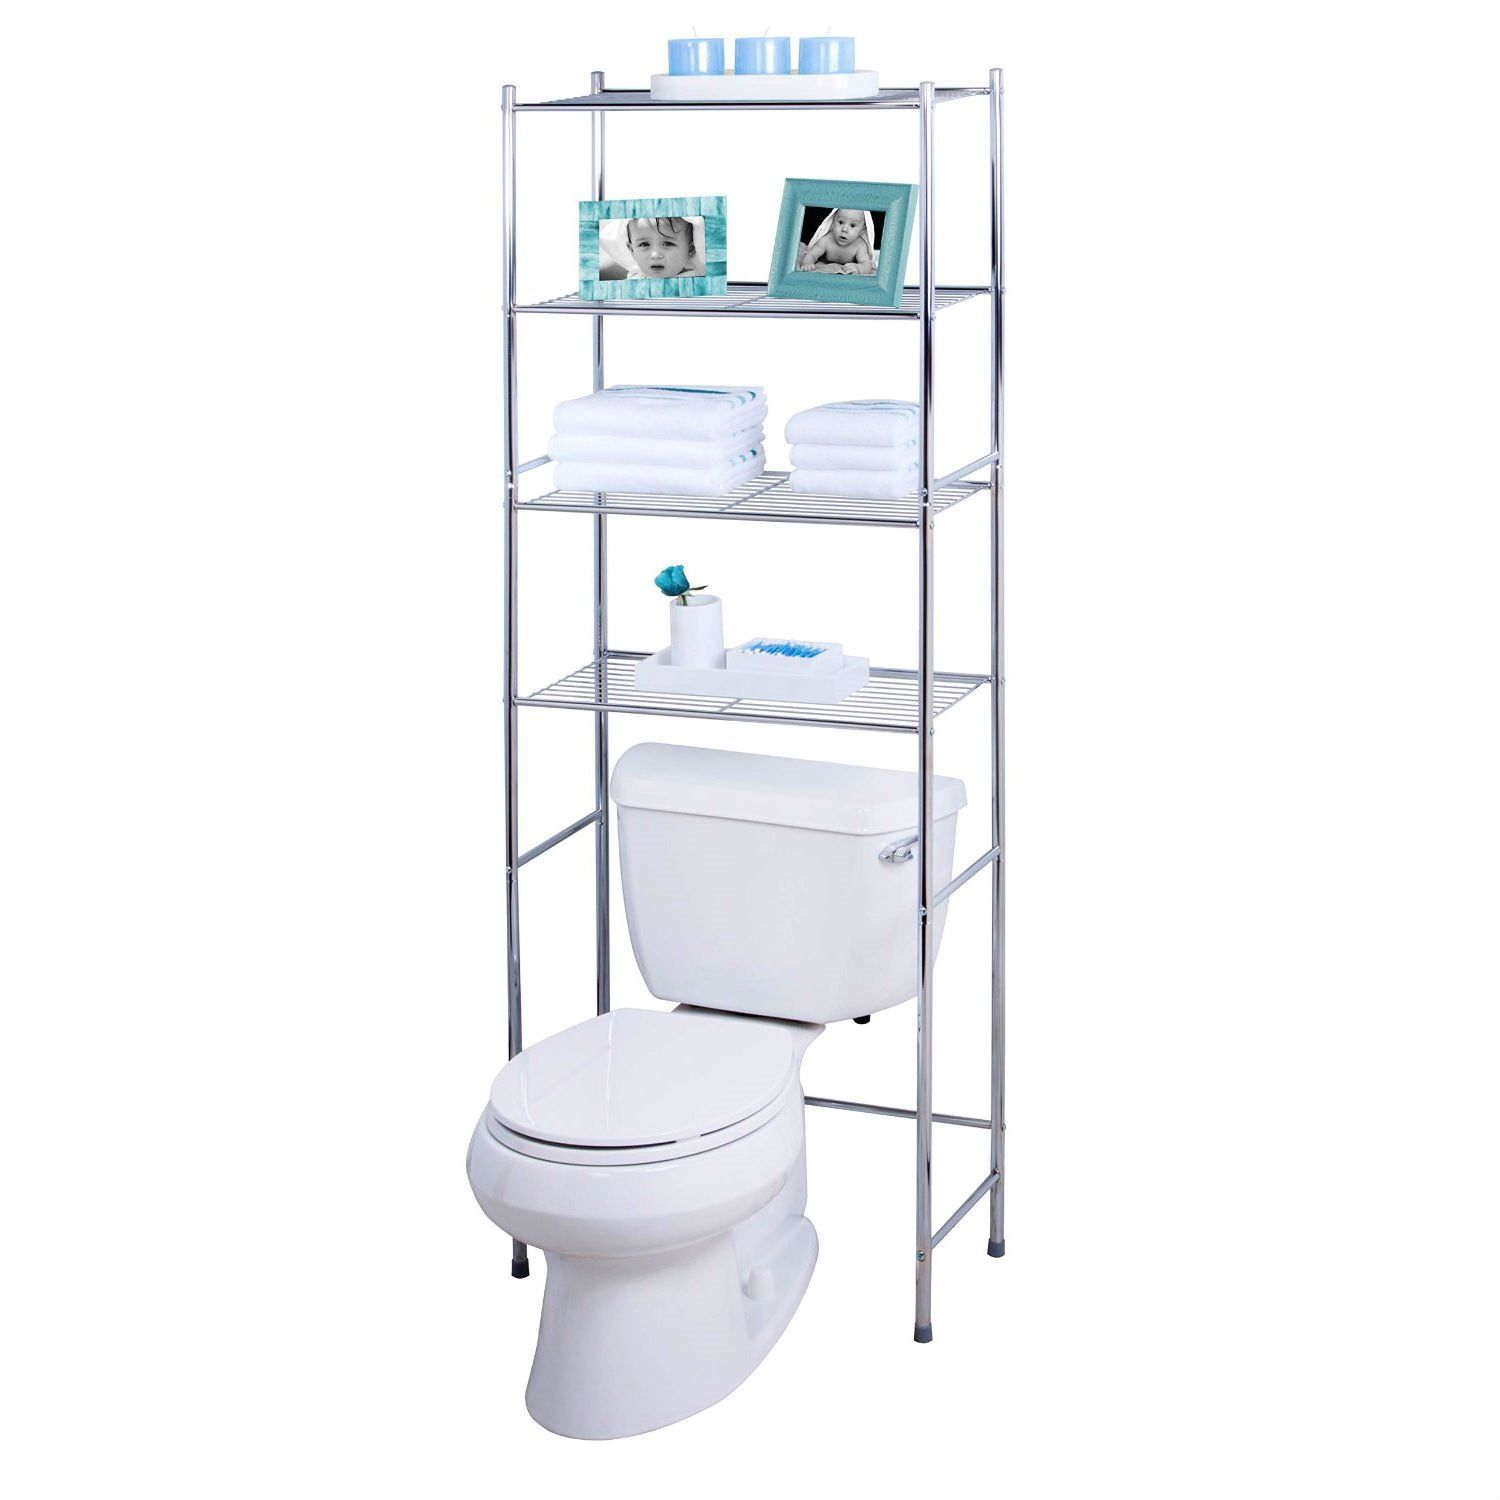 Bathroom Linen Tower Over The Toilet Shelving Unit In Chrome Metal Finish Bathroom Space Saver Over Toilet Storage Metal Bathroom Shelf